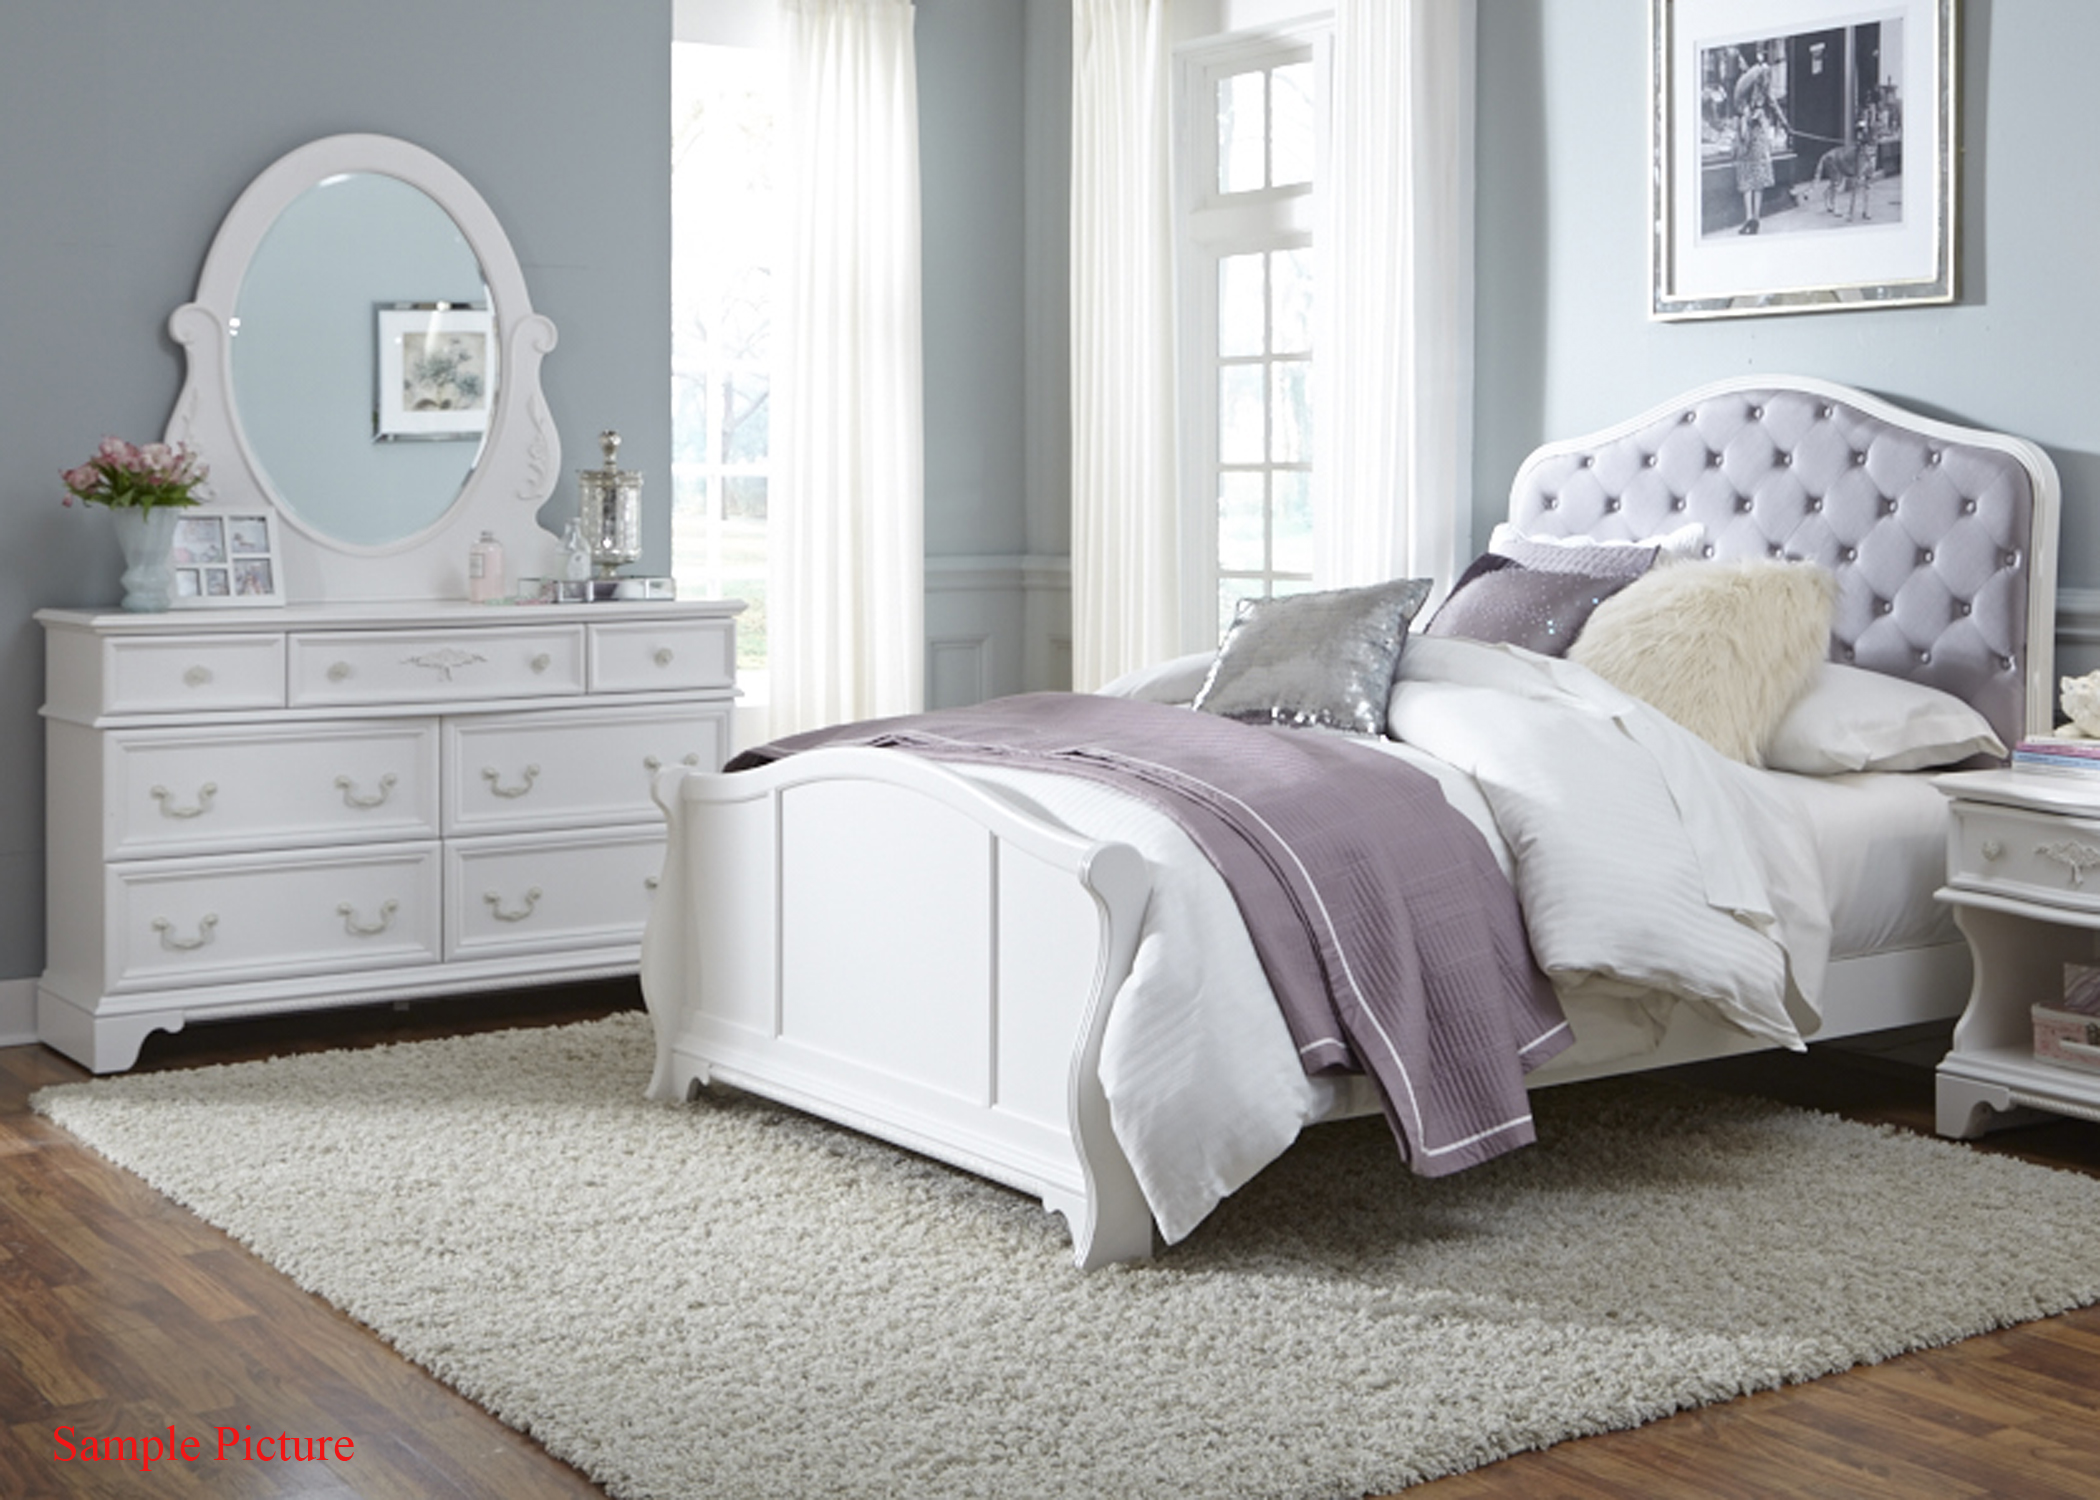 Liberty Furniture Arielle Youth Bedroom Twin Bedroom Group - Item Number: 352-YBR-TPBDM